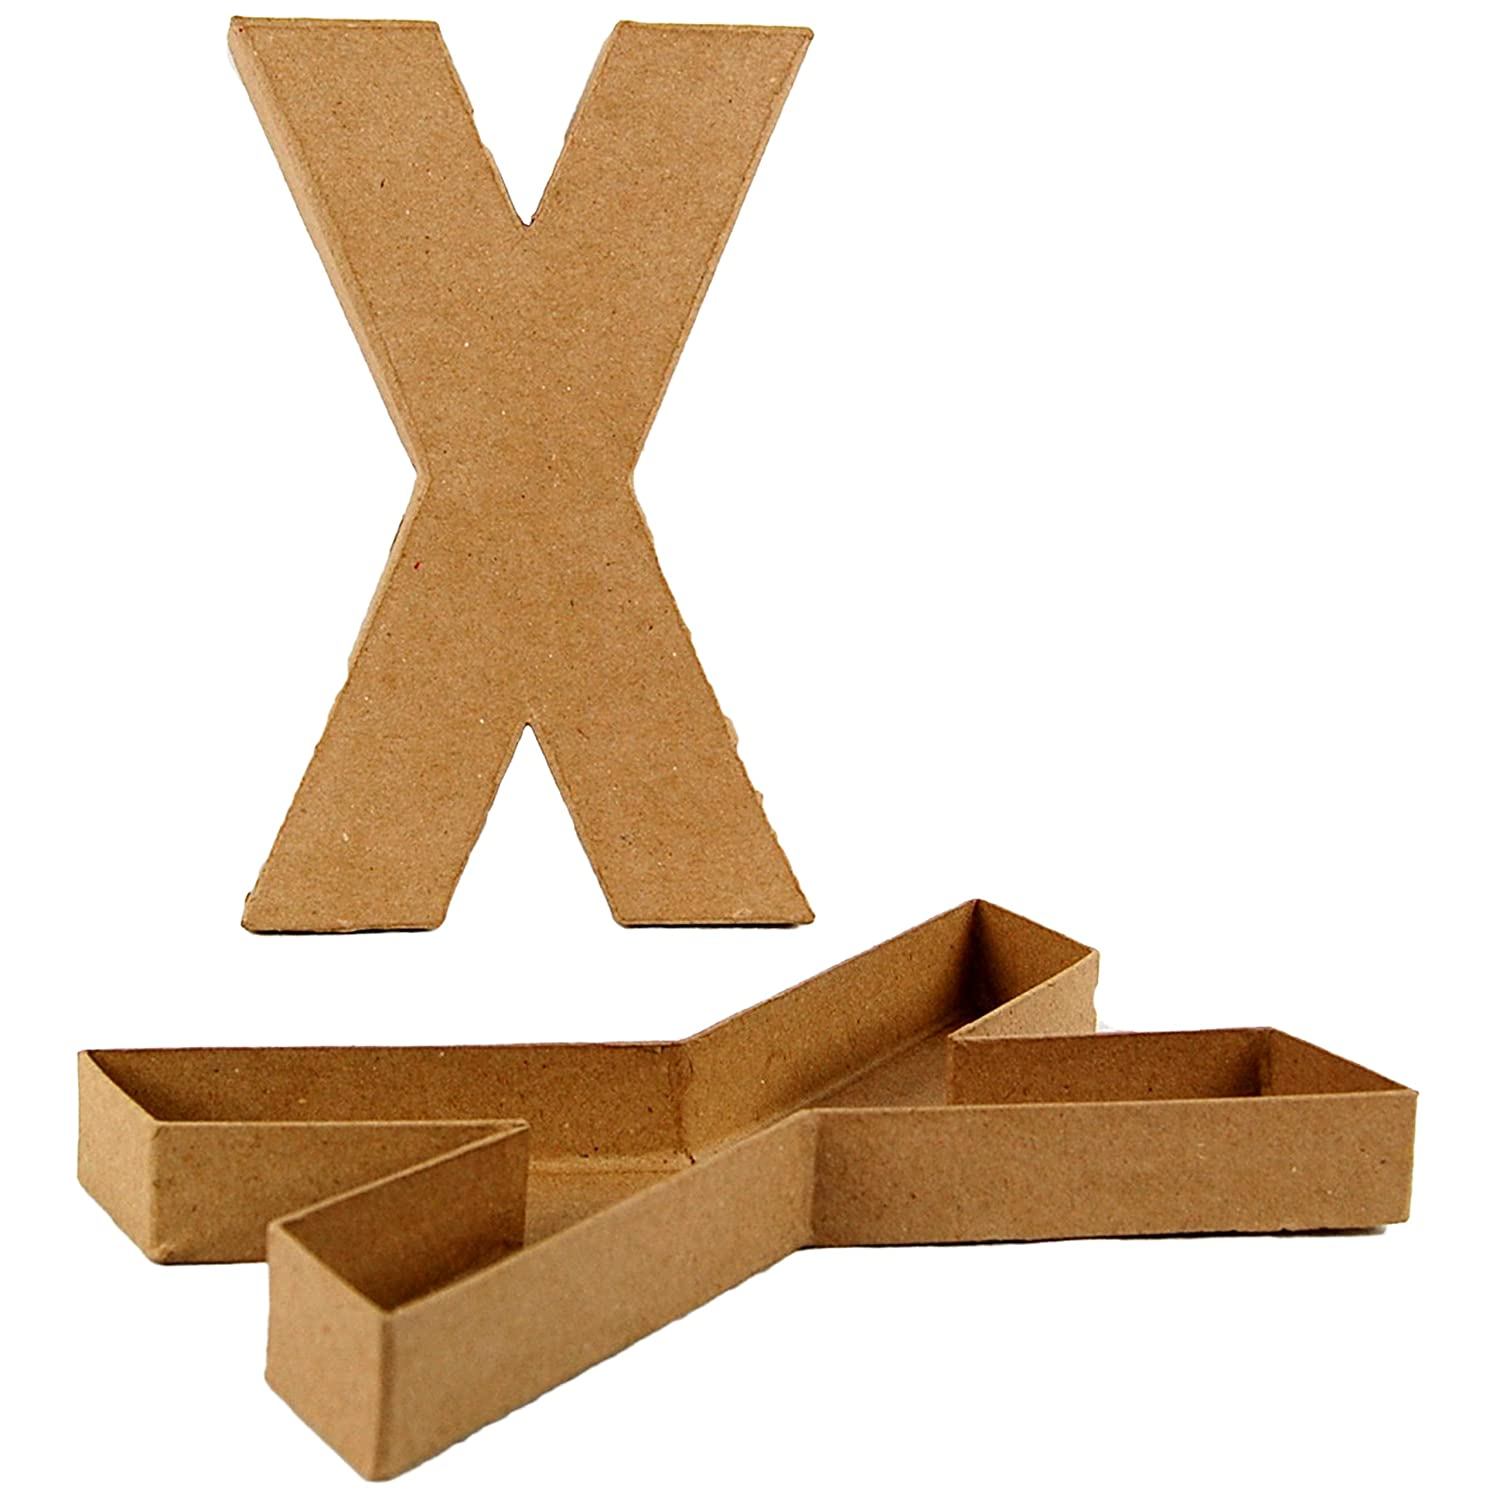 Country Love Crafts 8 25 inch 20 5cm Letter X Shaped Box Papier